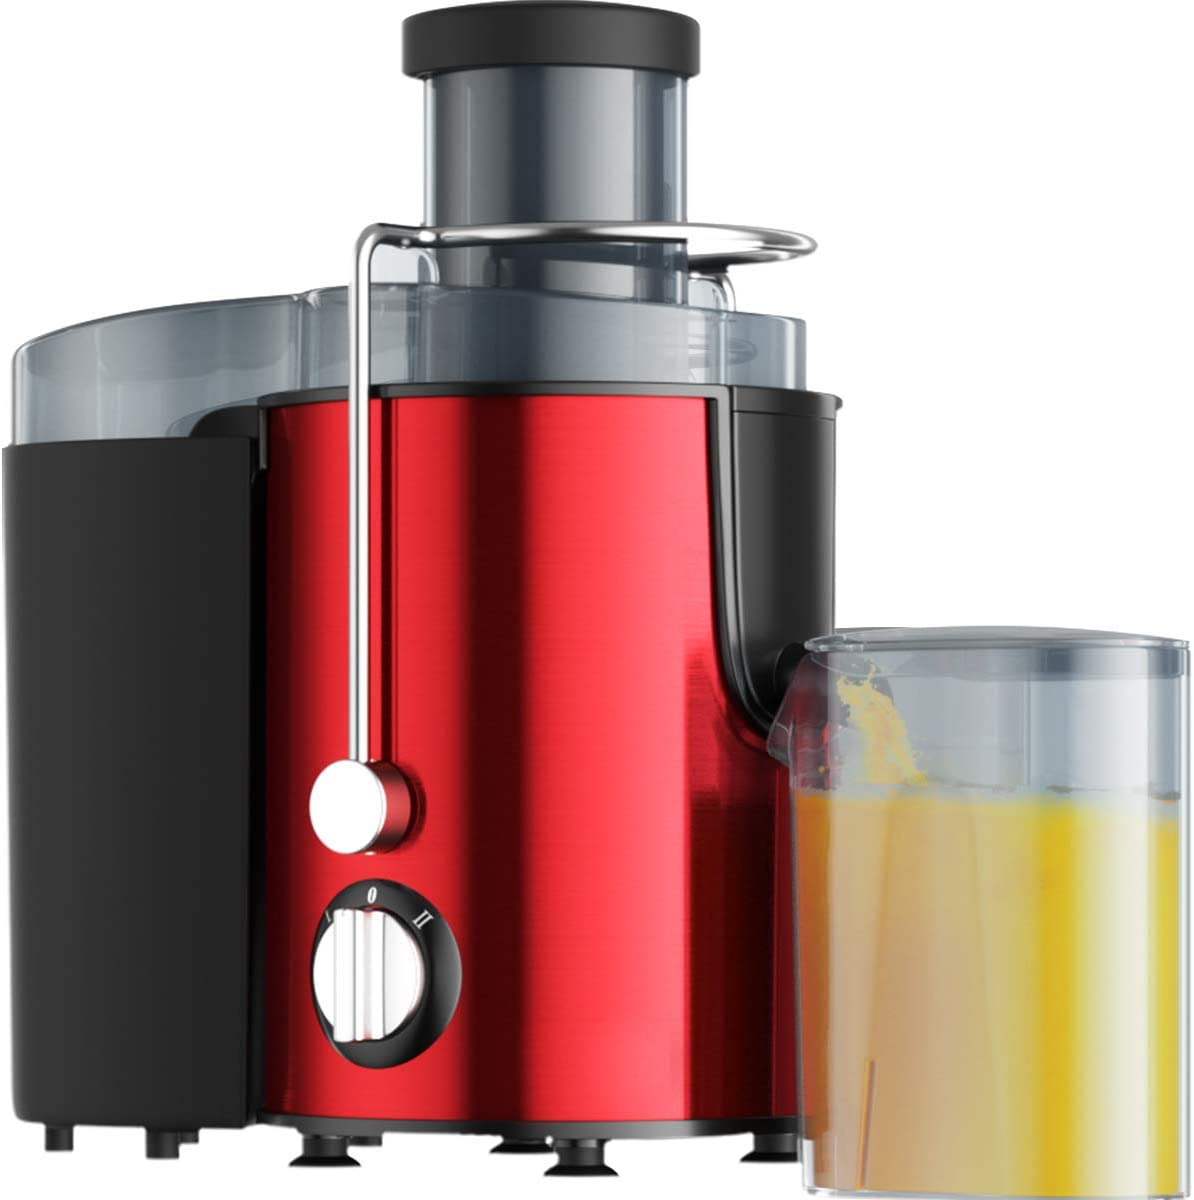 Juicer Wide Mouth Juice Extractor, Juicer Machines BPA Free Compact Fruits & Vegetables Juicer, Dual Speed Centrifugal Juicer with Anti-drip Function, Stainless Steel Juicers Easy to Clean (Red2)